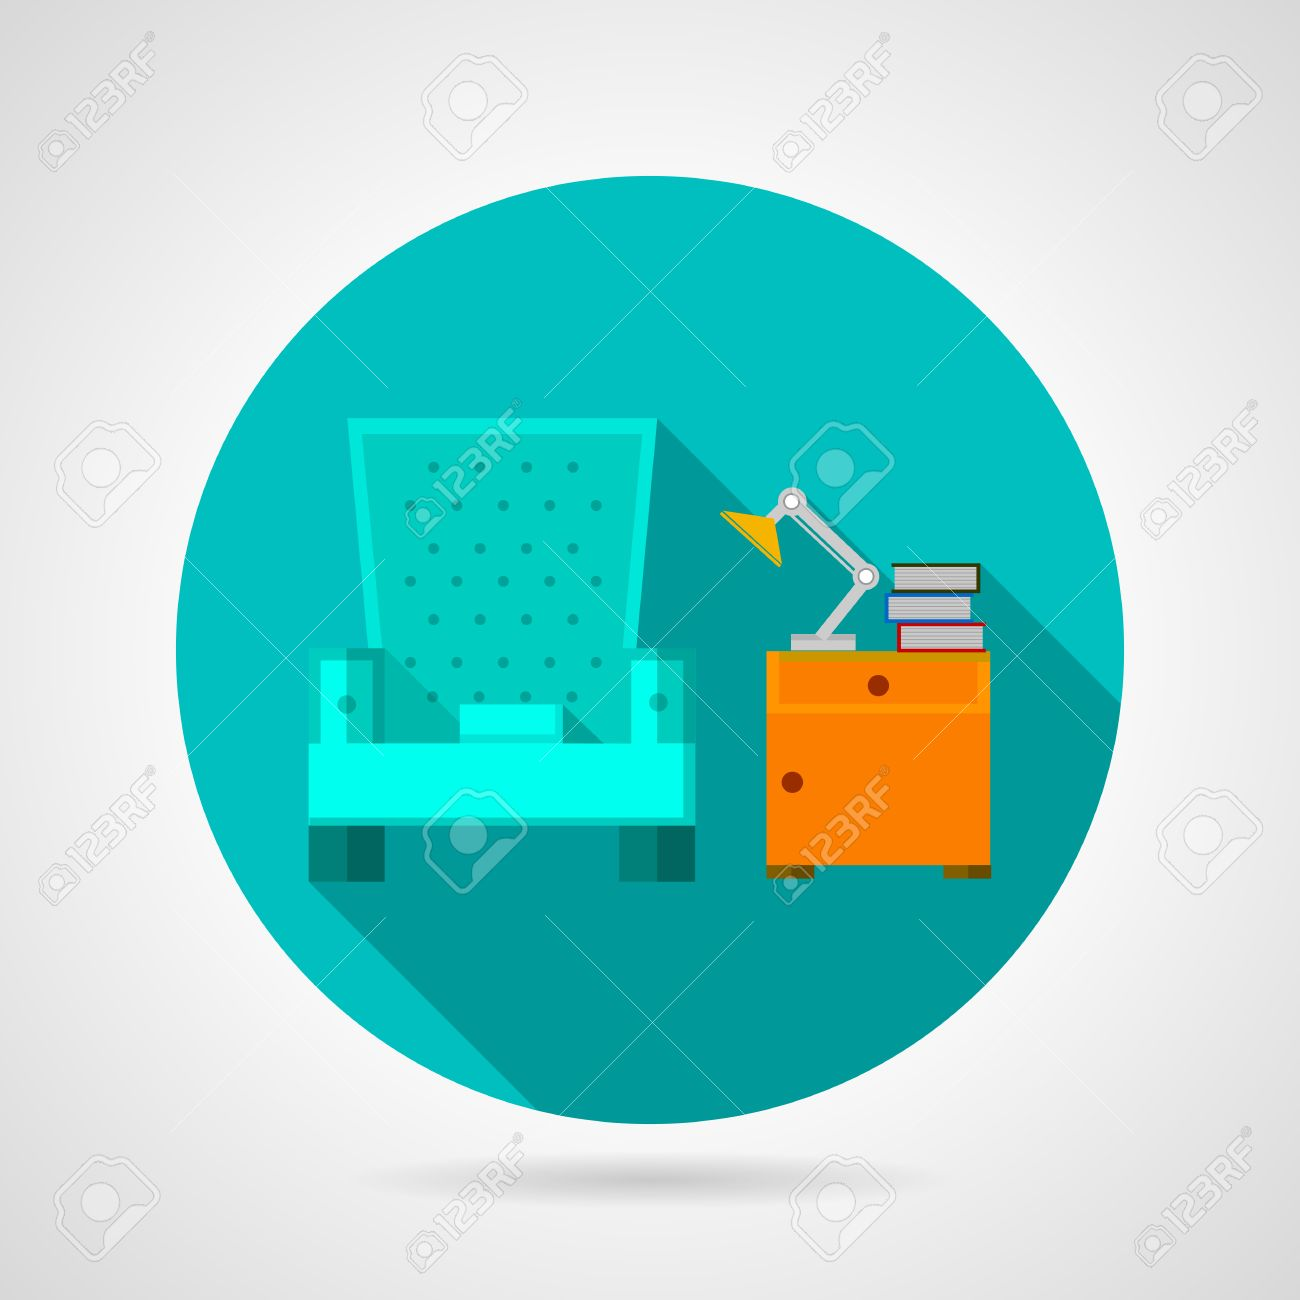 Round Blue Flat Vector Icon For Room Interior With Armchair And Orange Bedside Table